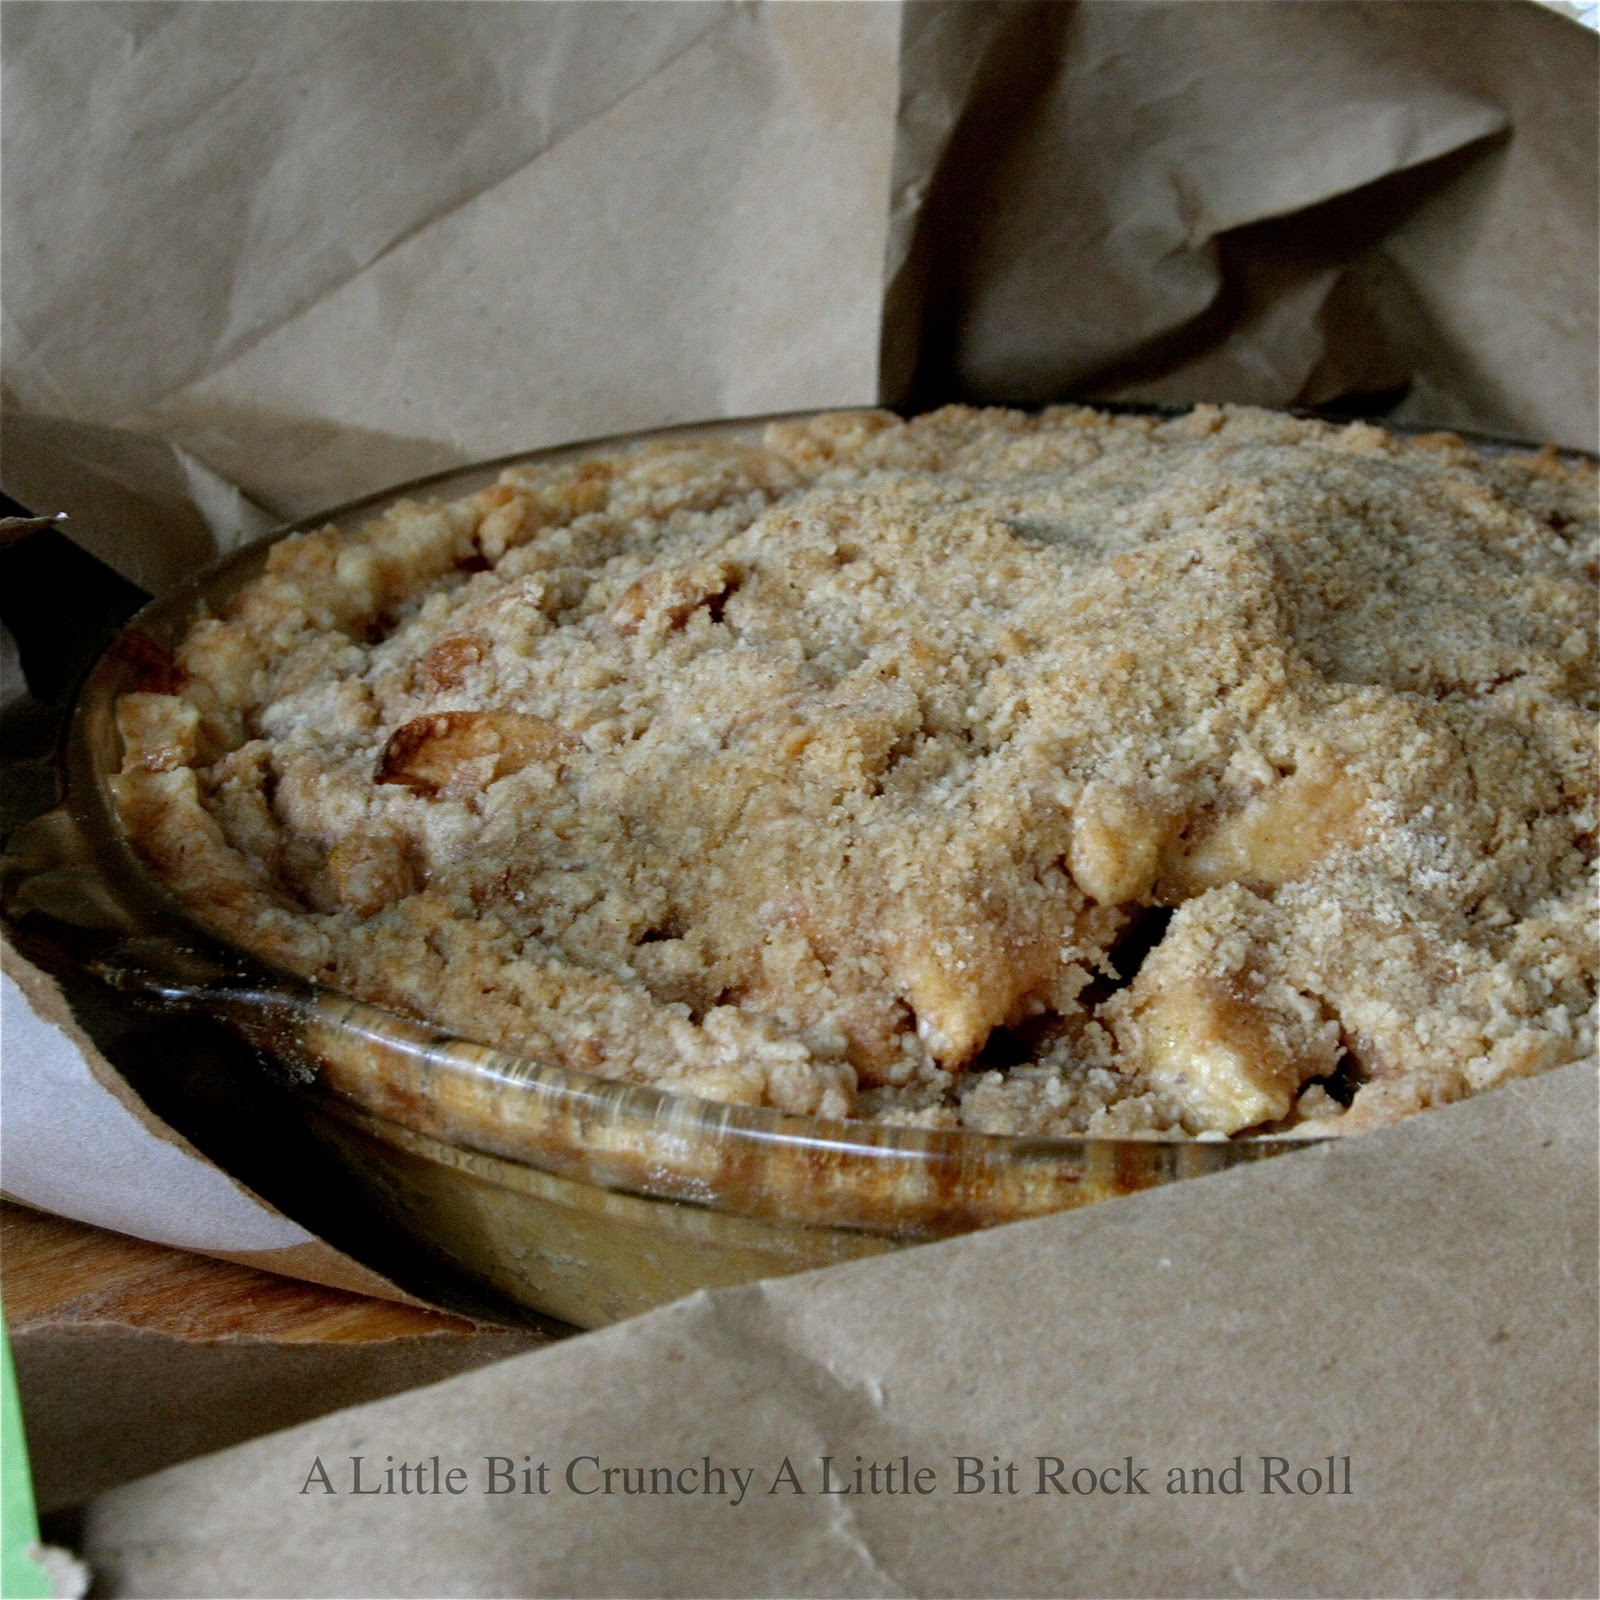 ... Crunchy A Little Bit Rock and Roll: Brown Bag Baked Dutch Apple Pie